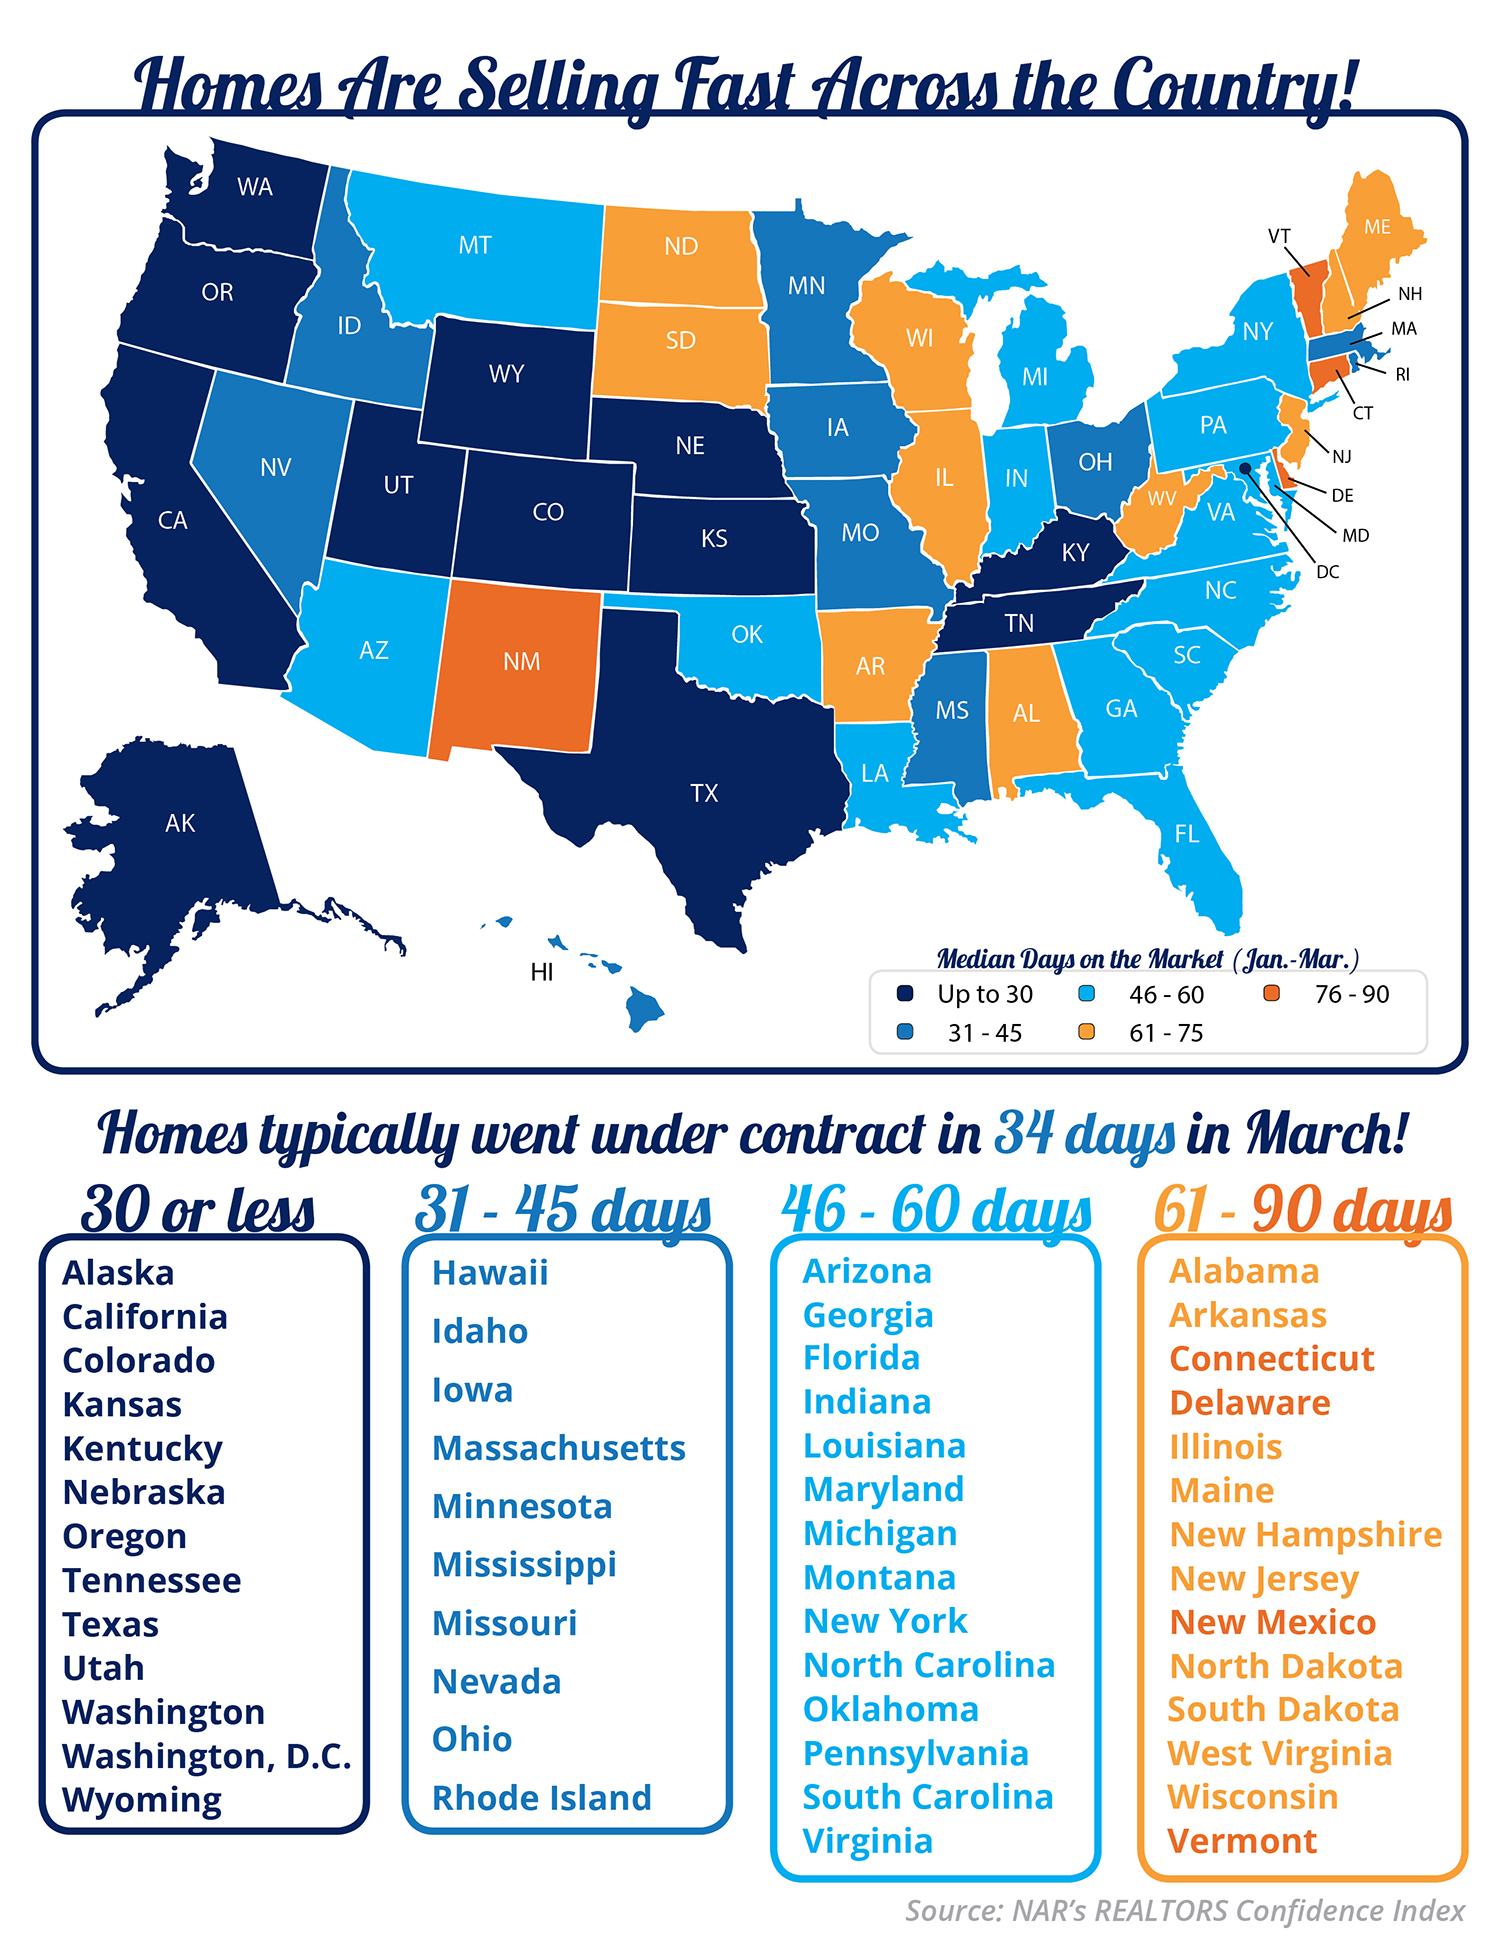 Homes are Selling Fast Across the Country [INFOGRAPHIC] | Bridge Builders